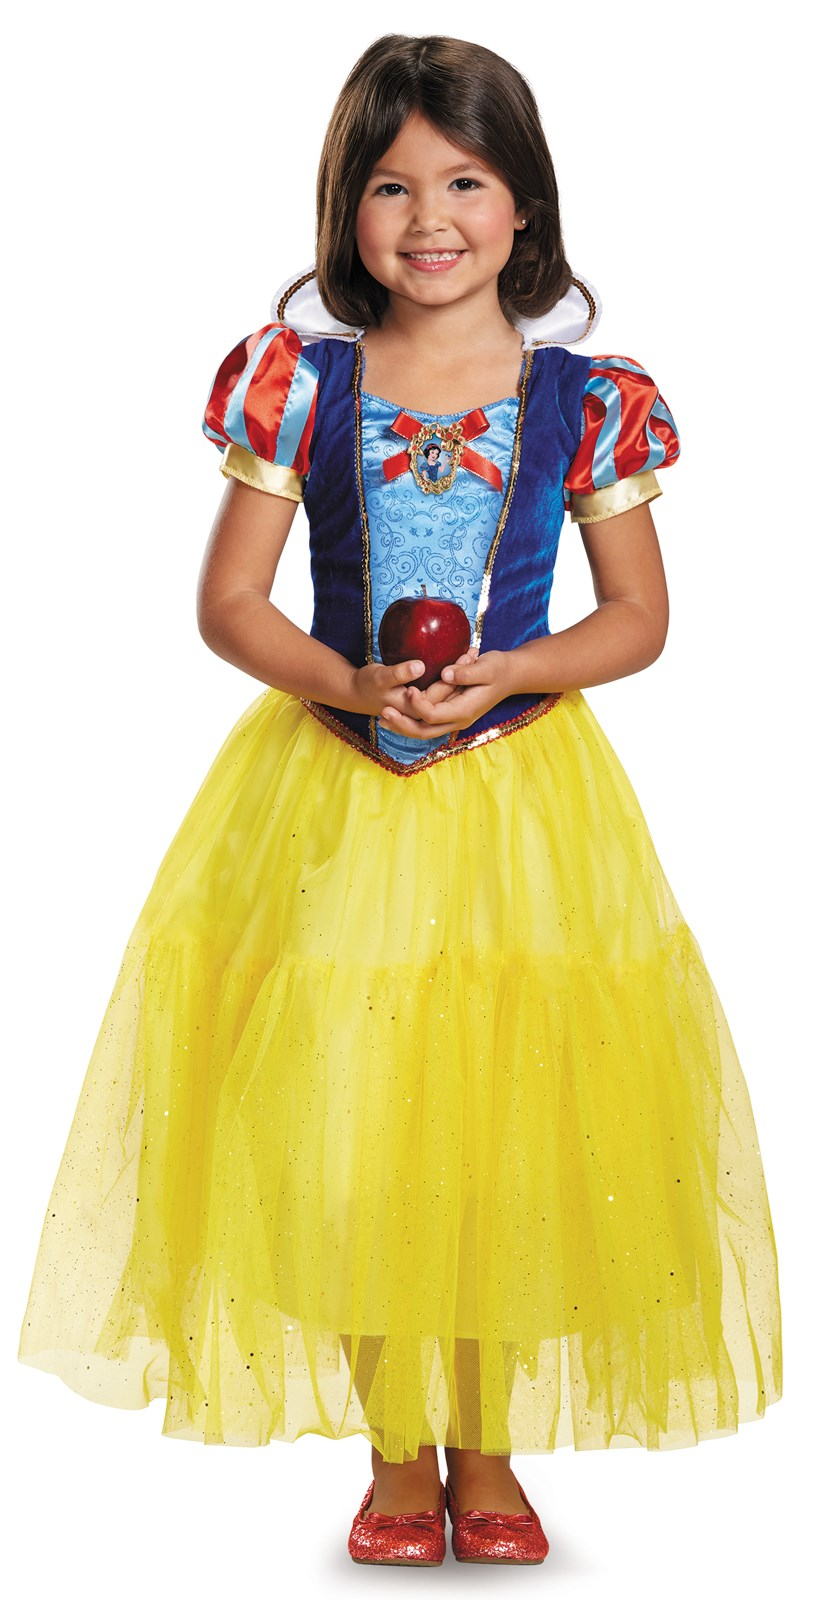 Disney Snow White Deluxe Sparkle Toddler / Child Costume 4-6